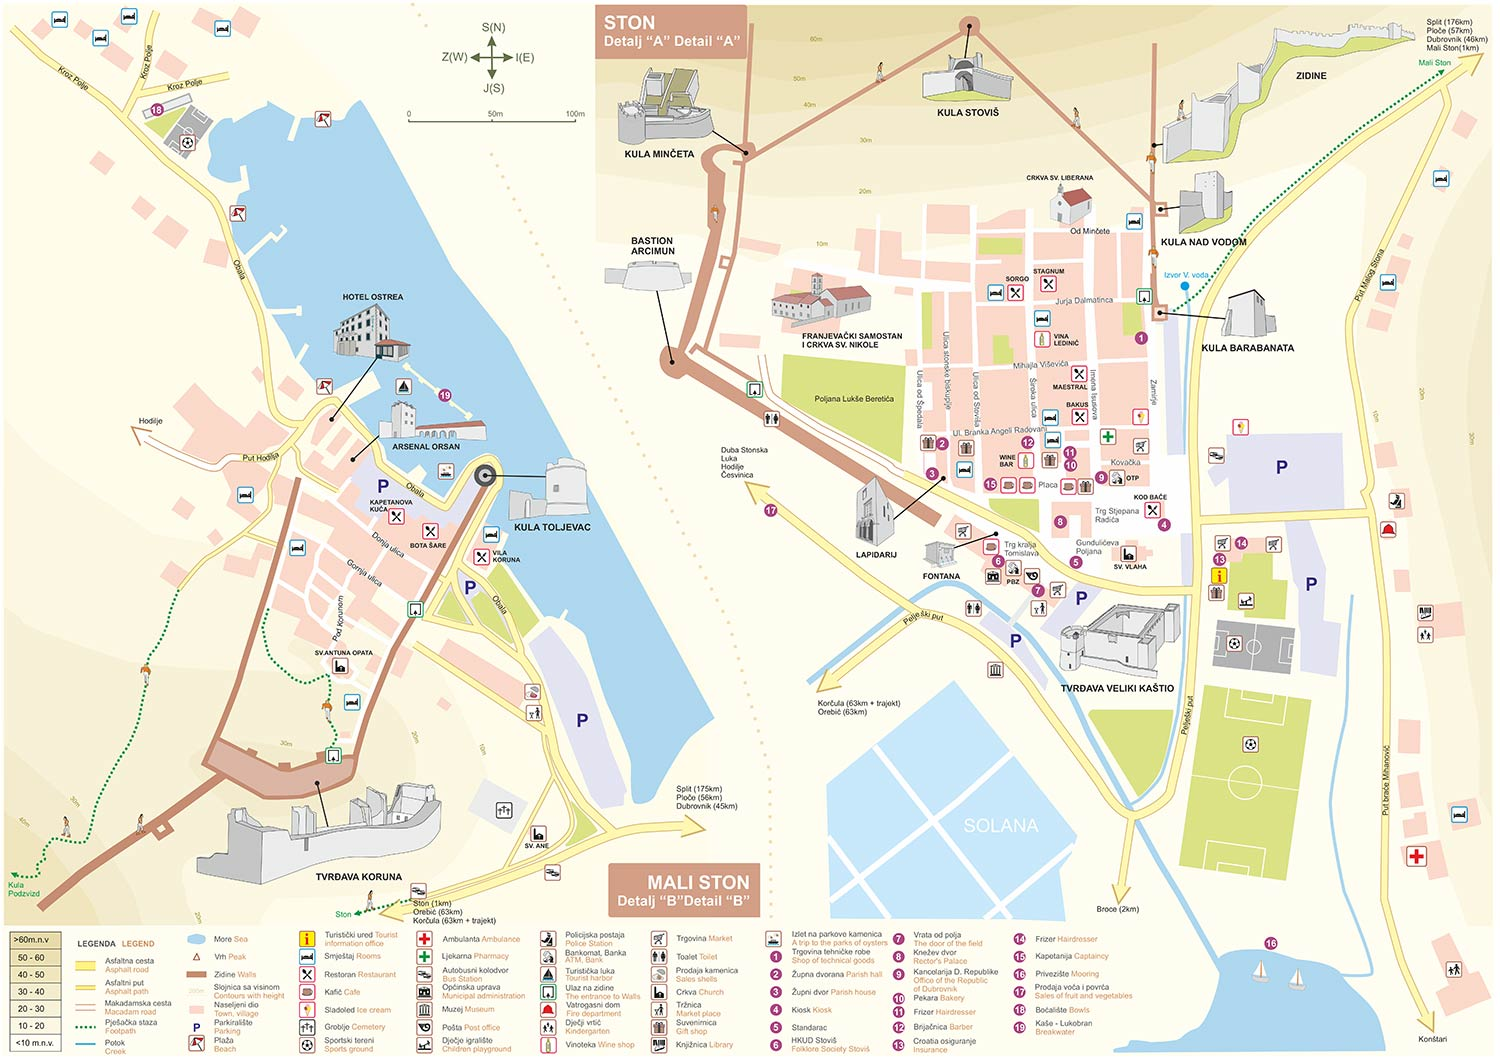 Visitors Map of Ston and Mali Ston